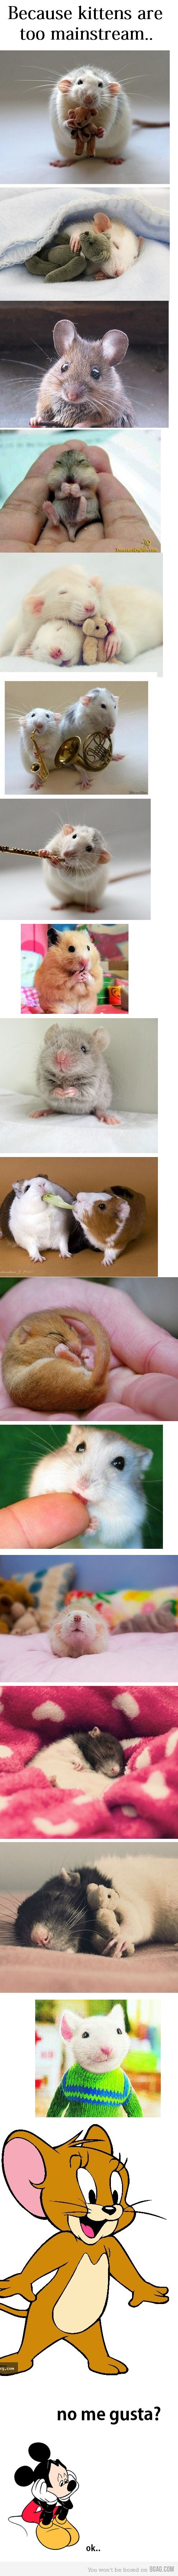 Rats! People do not understand what great pets they are..